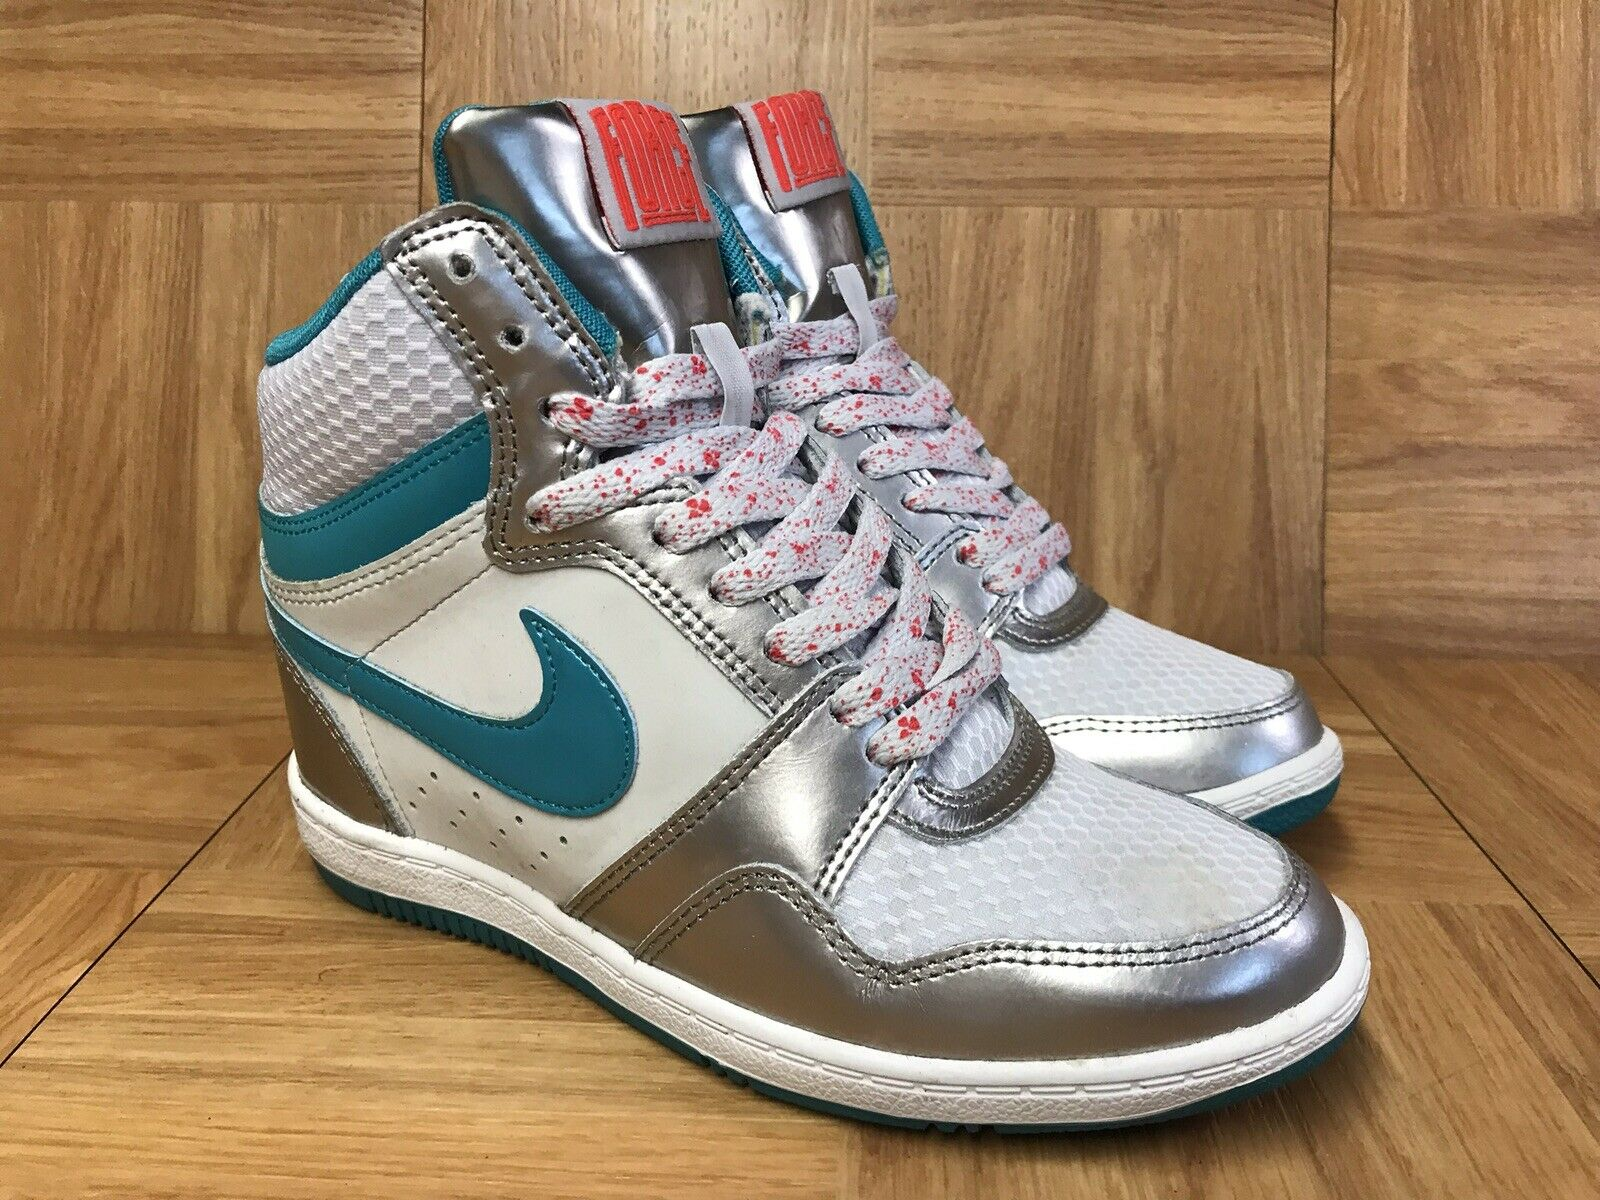 RARE Nike Air Force Sky High Premium Platinum Silver Turbo Sz 6 644413-002